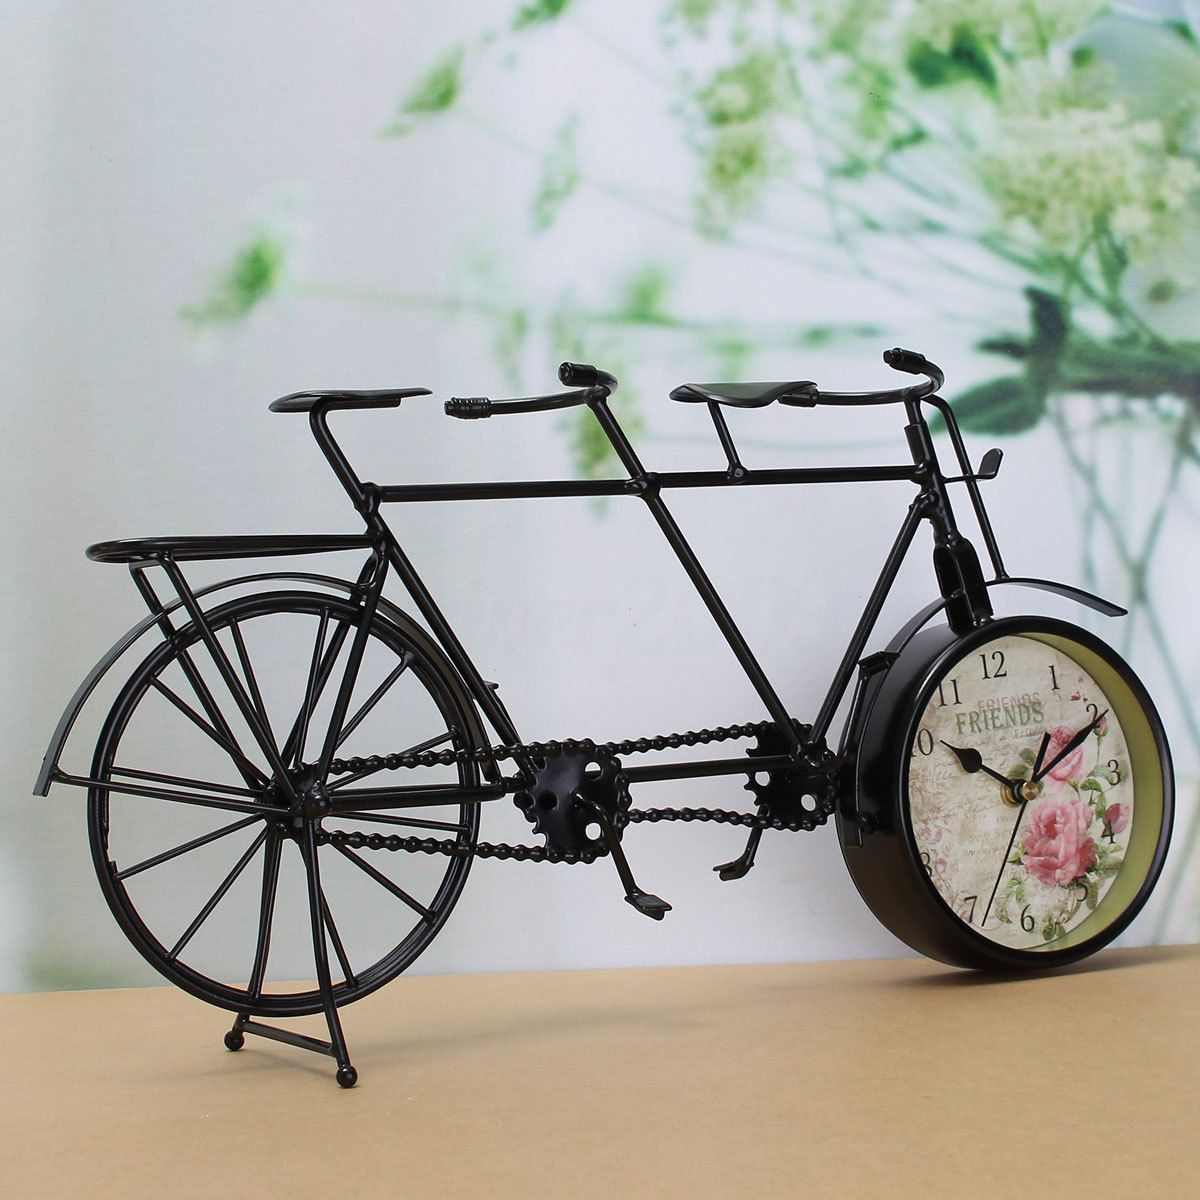 retro classic double bicycle clock table clock home decor diy gifts bike clock